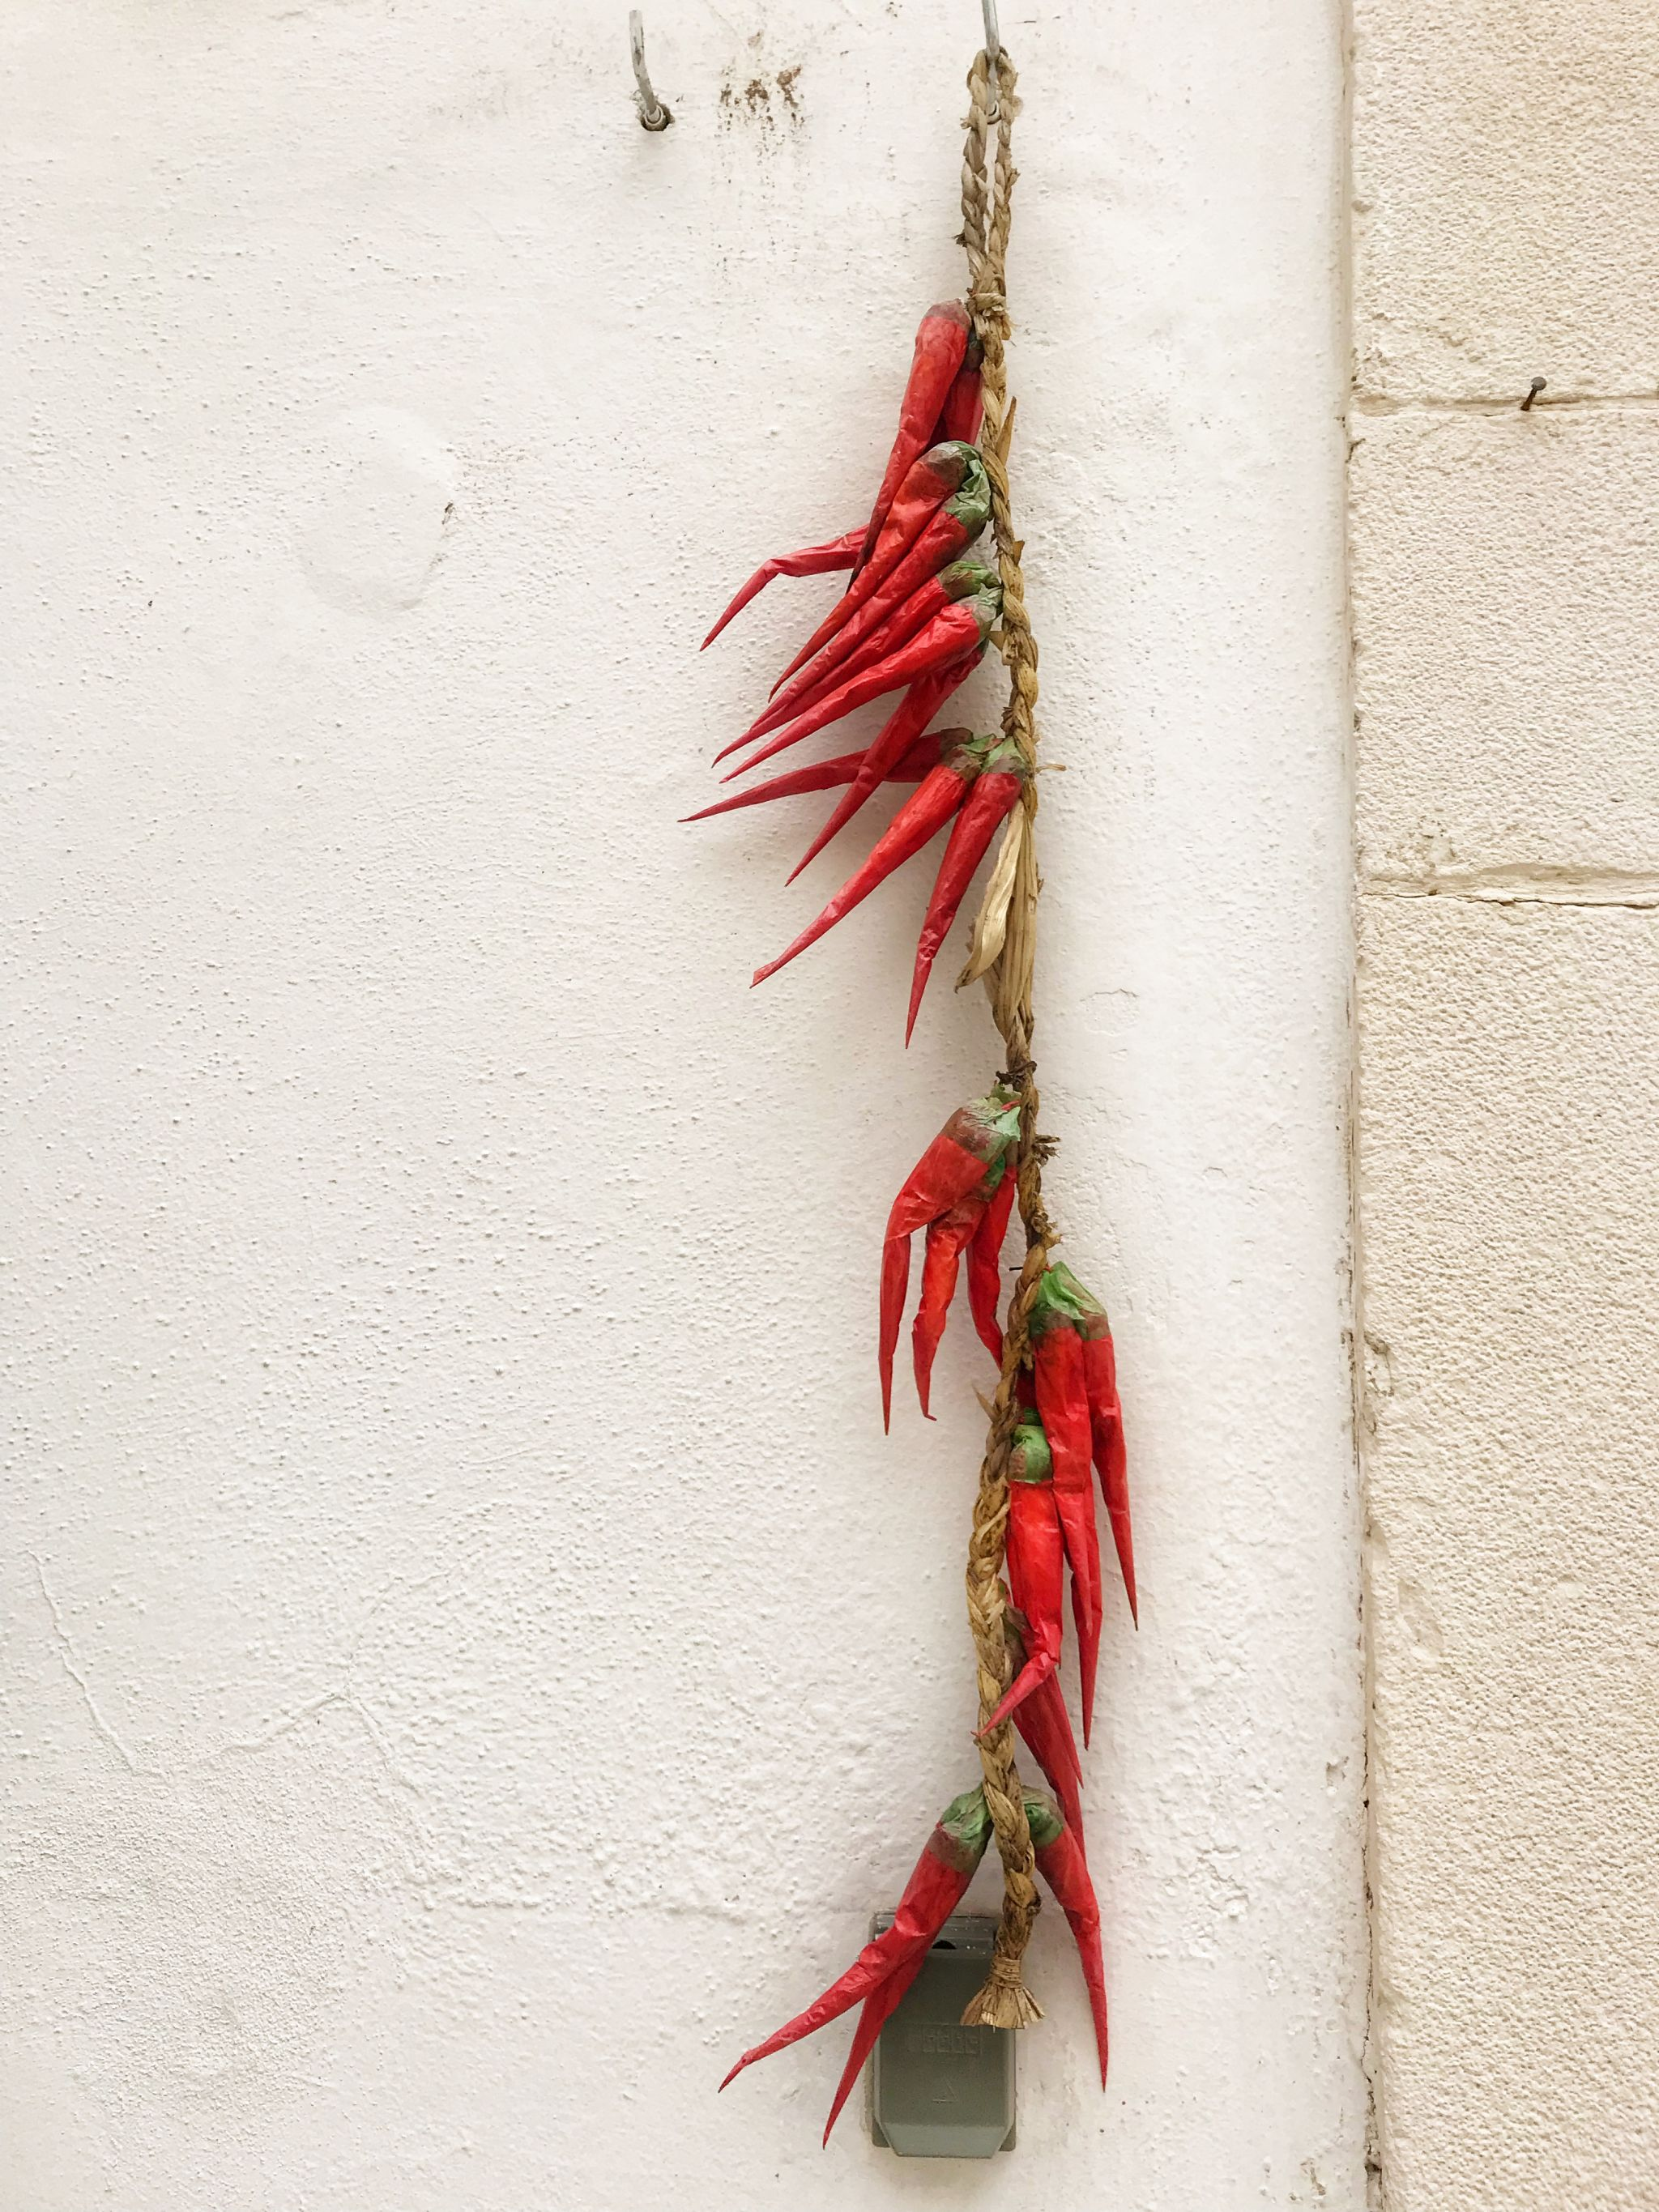 Red Chillis dangling from a doorway in Italy